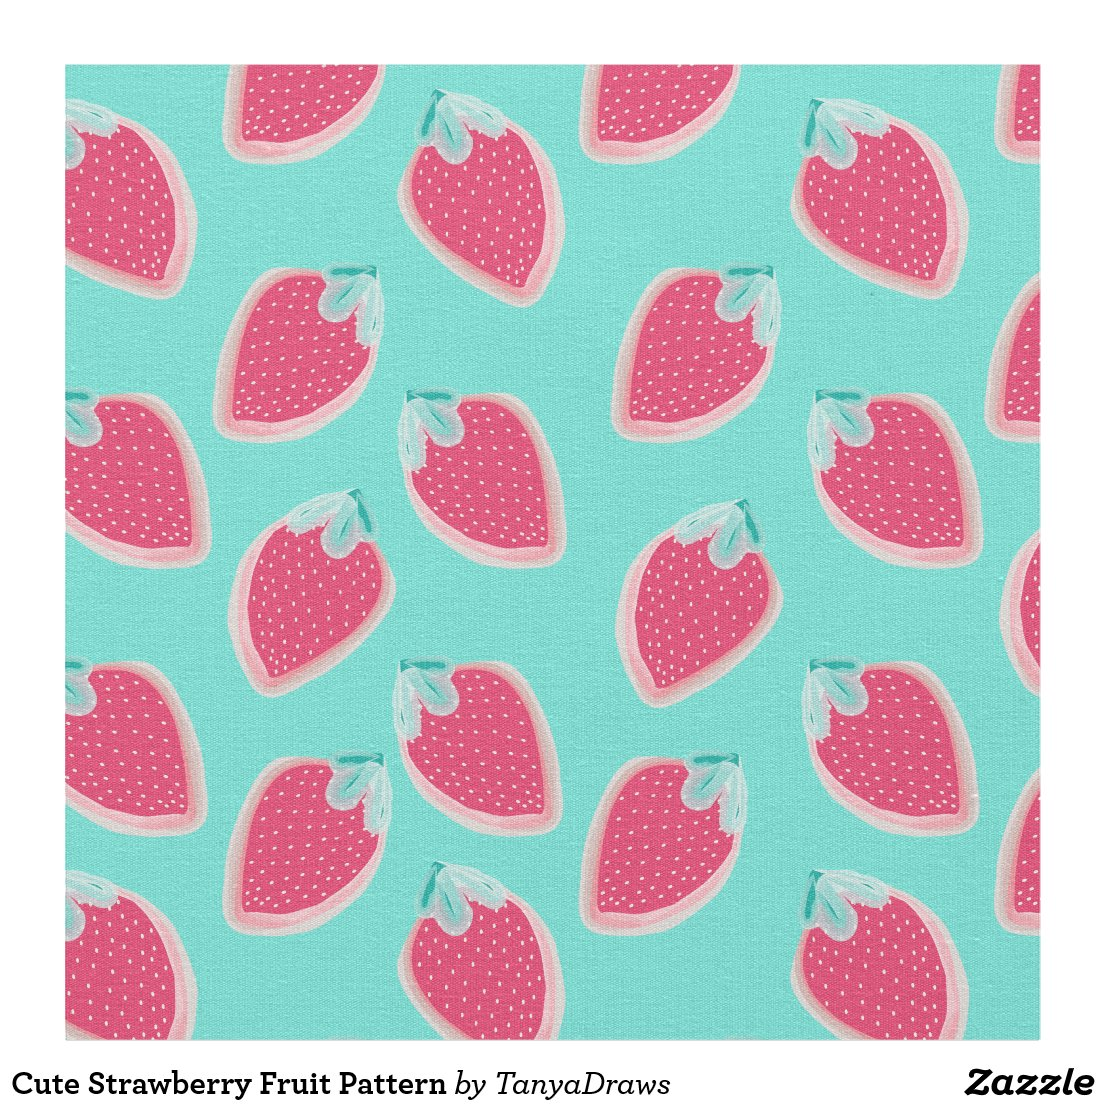 Cute Strawberry Fruit Pattern Fabric